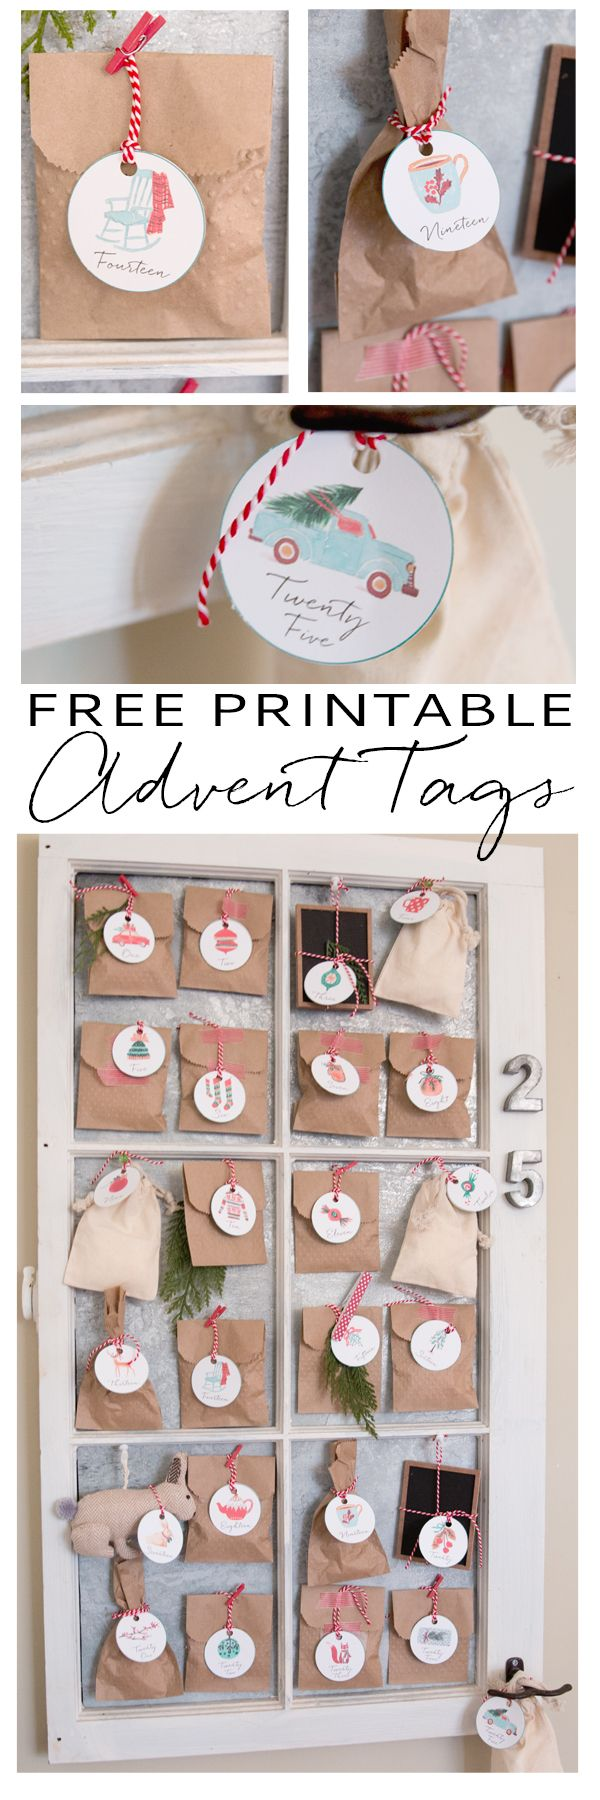 Are you like me and before you know it, it is December 1st and you really really meant to put together an Advent calendar?  More times than not, that has been the case for me.  This year however, I am so ready – and I am sharing a printable Advent calendar so that it will be super easy and quick